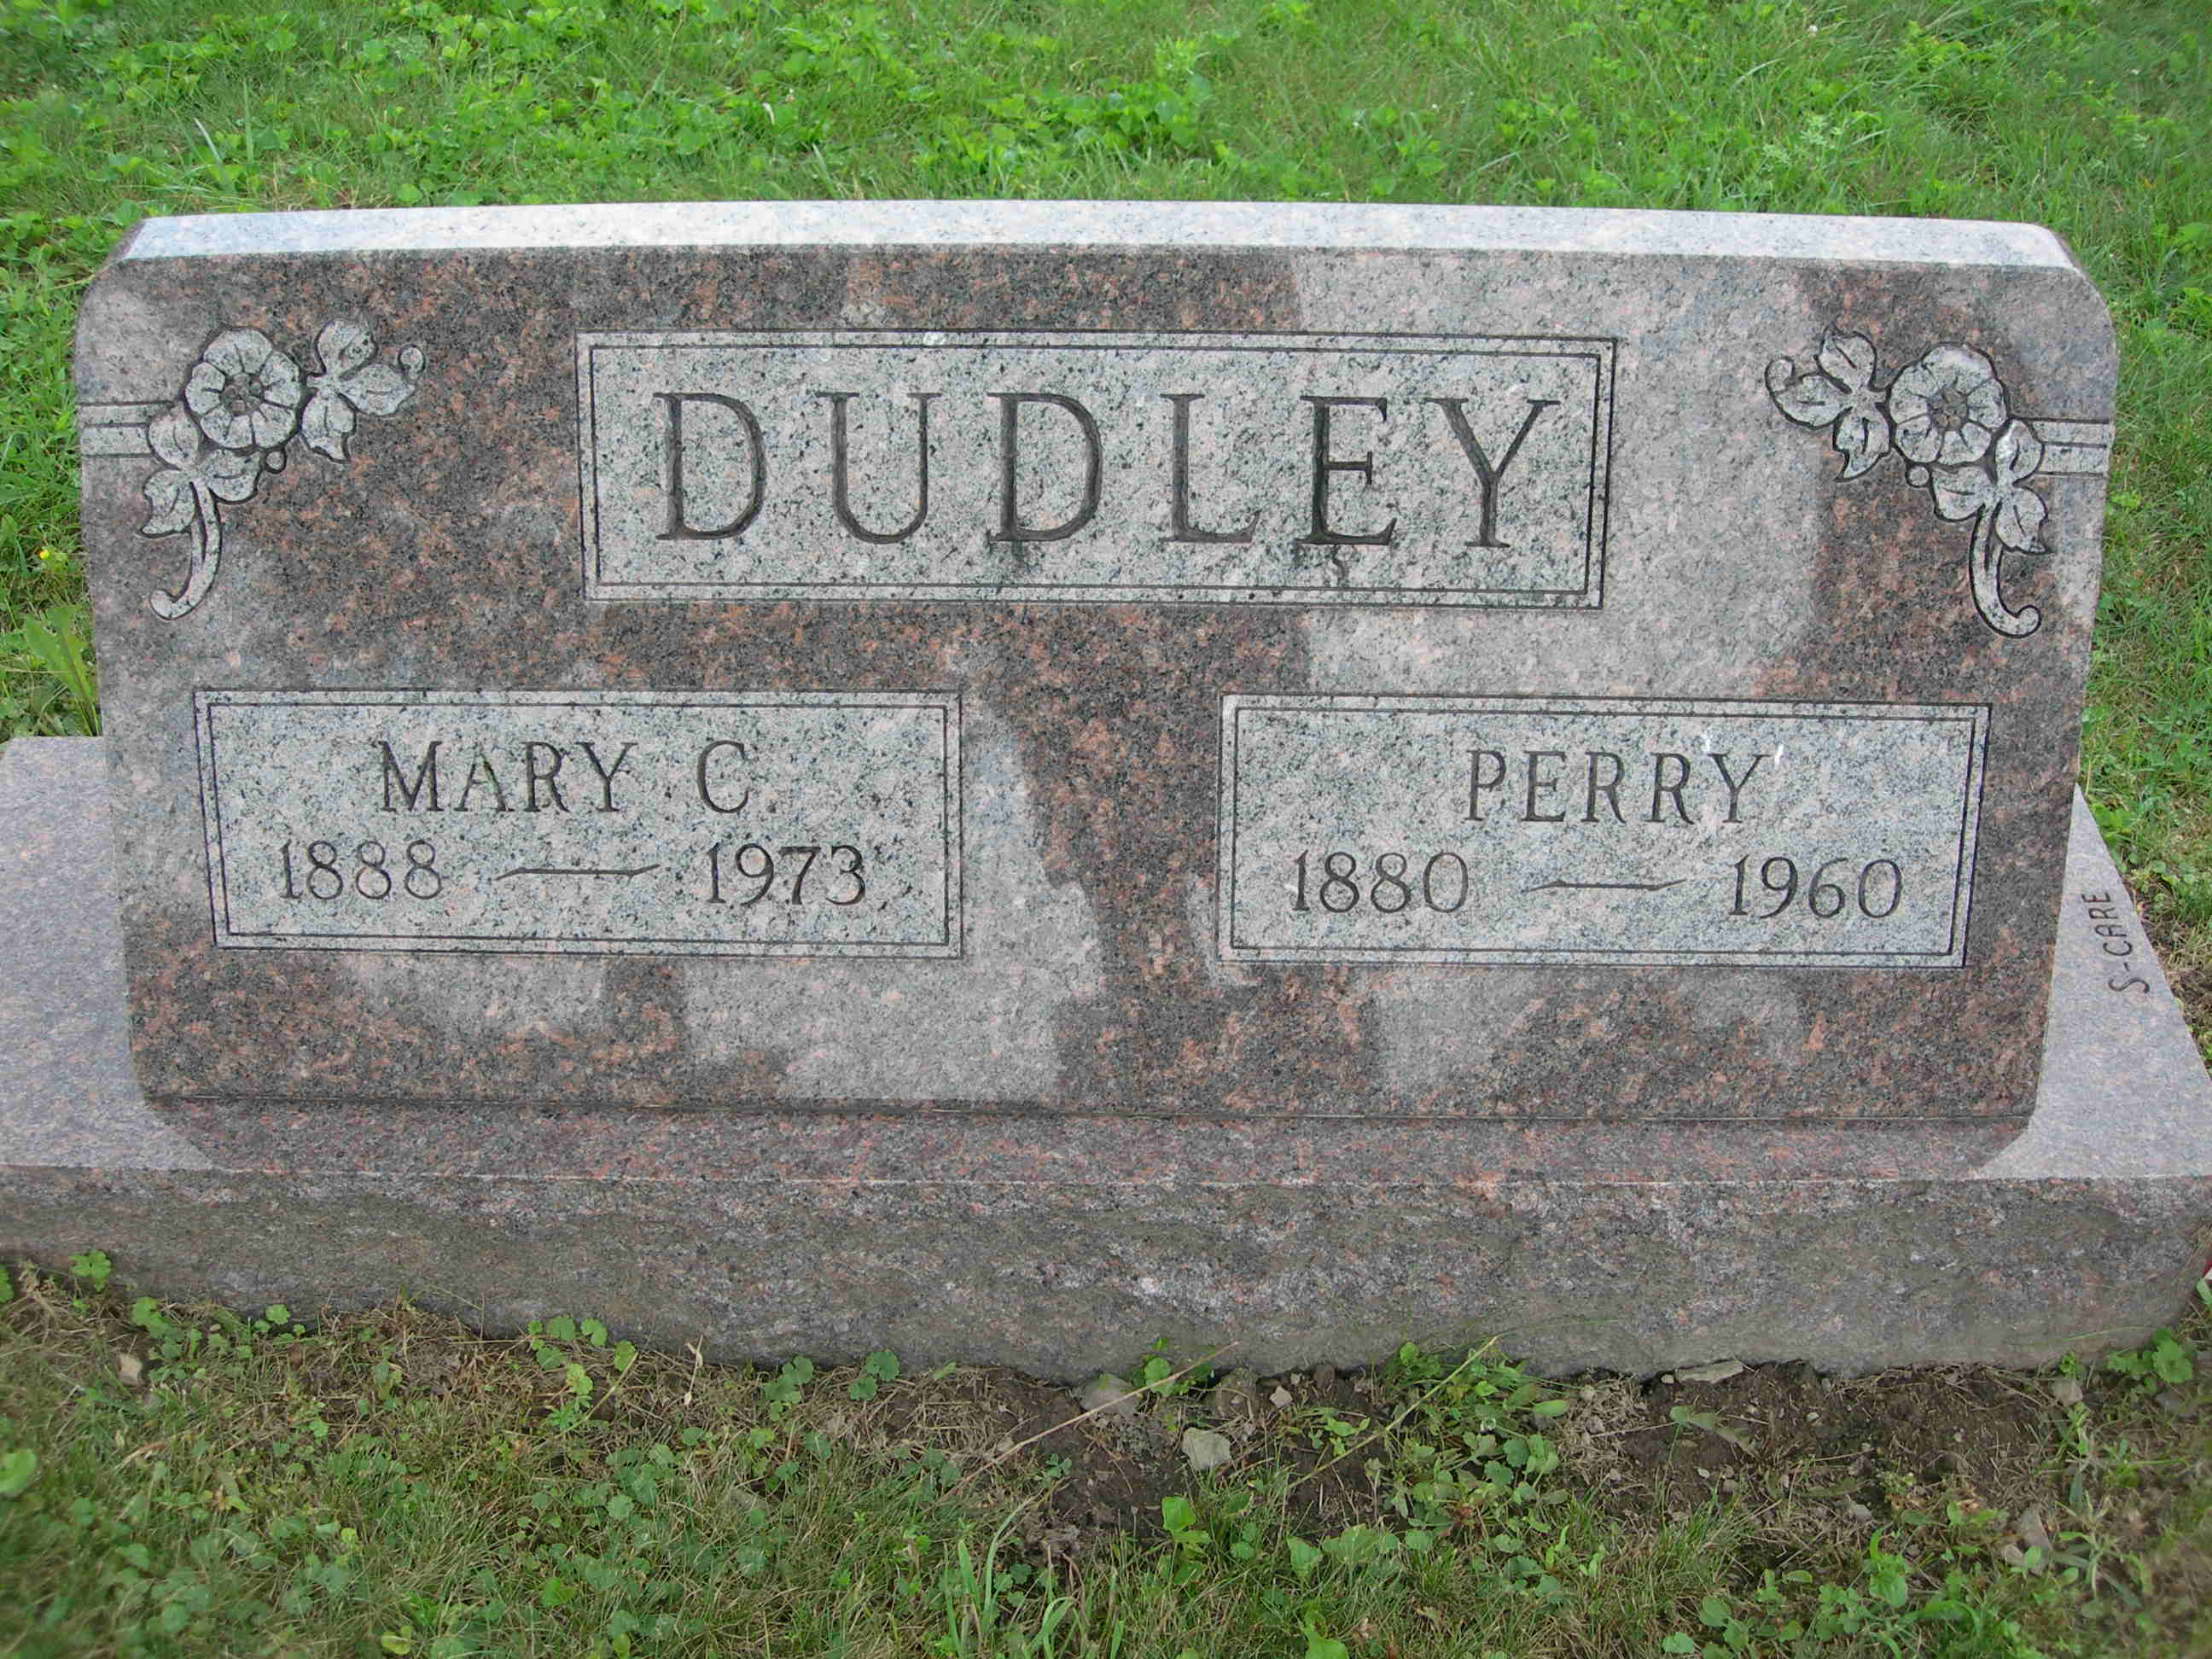 Perry Dudley